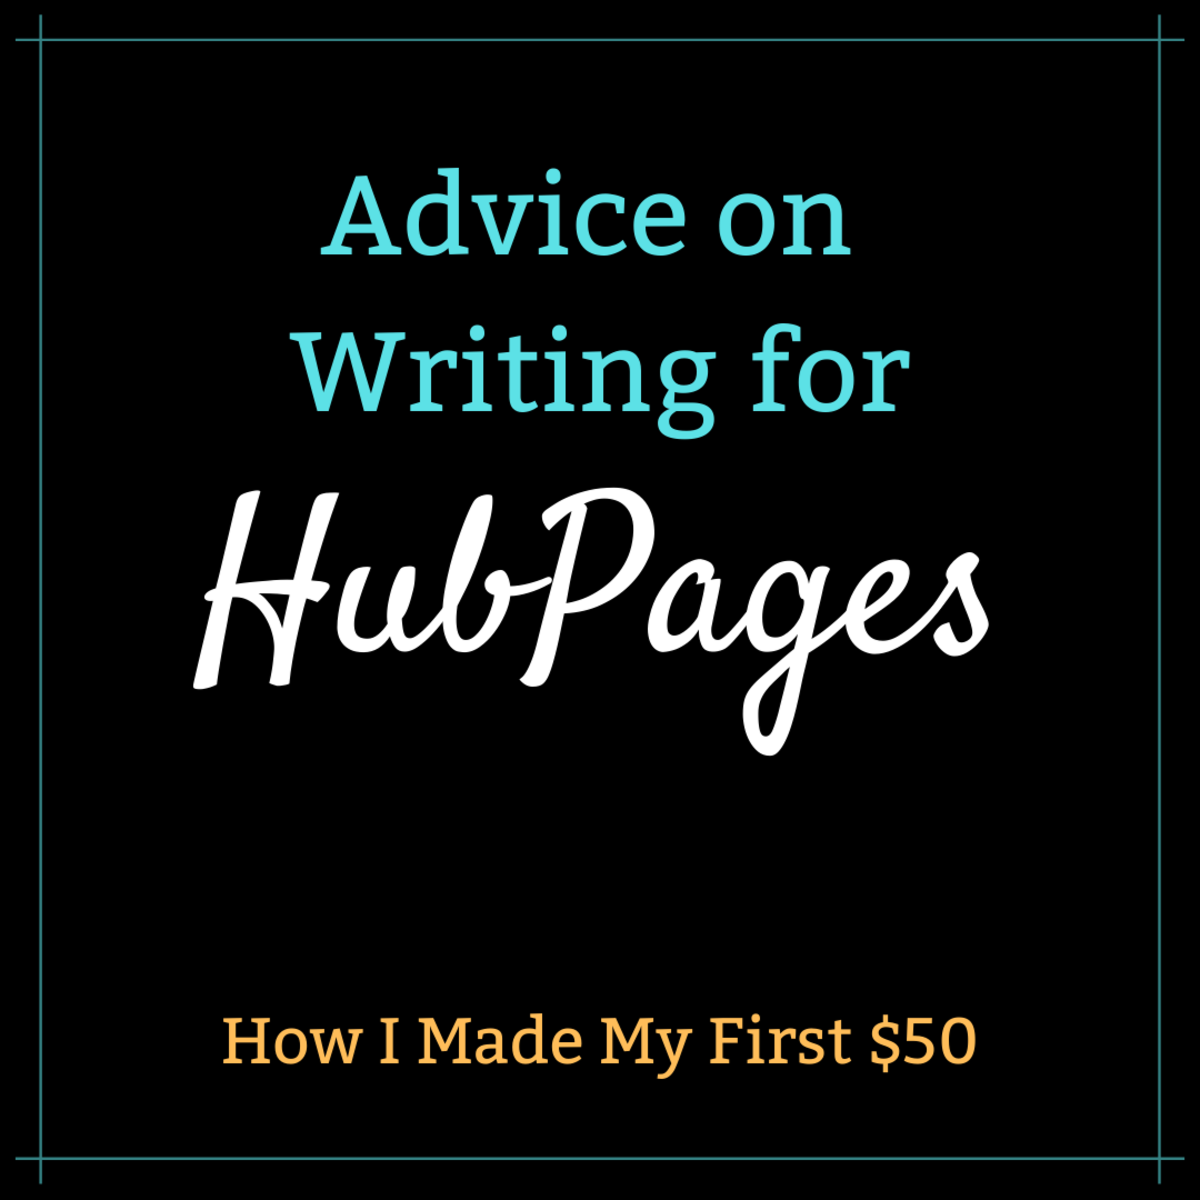 Discover some tips for writing articles on HubPages that will draw traffic.